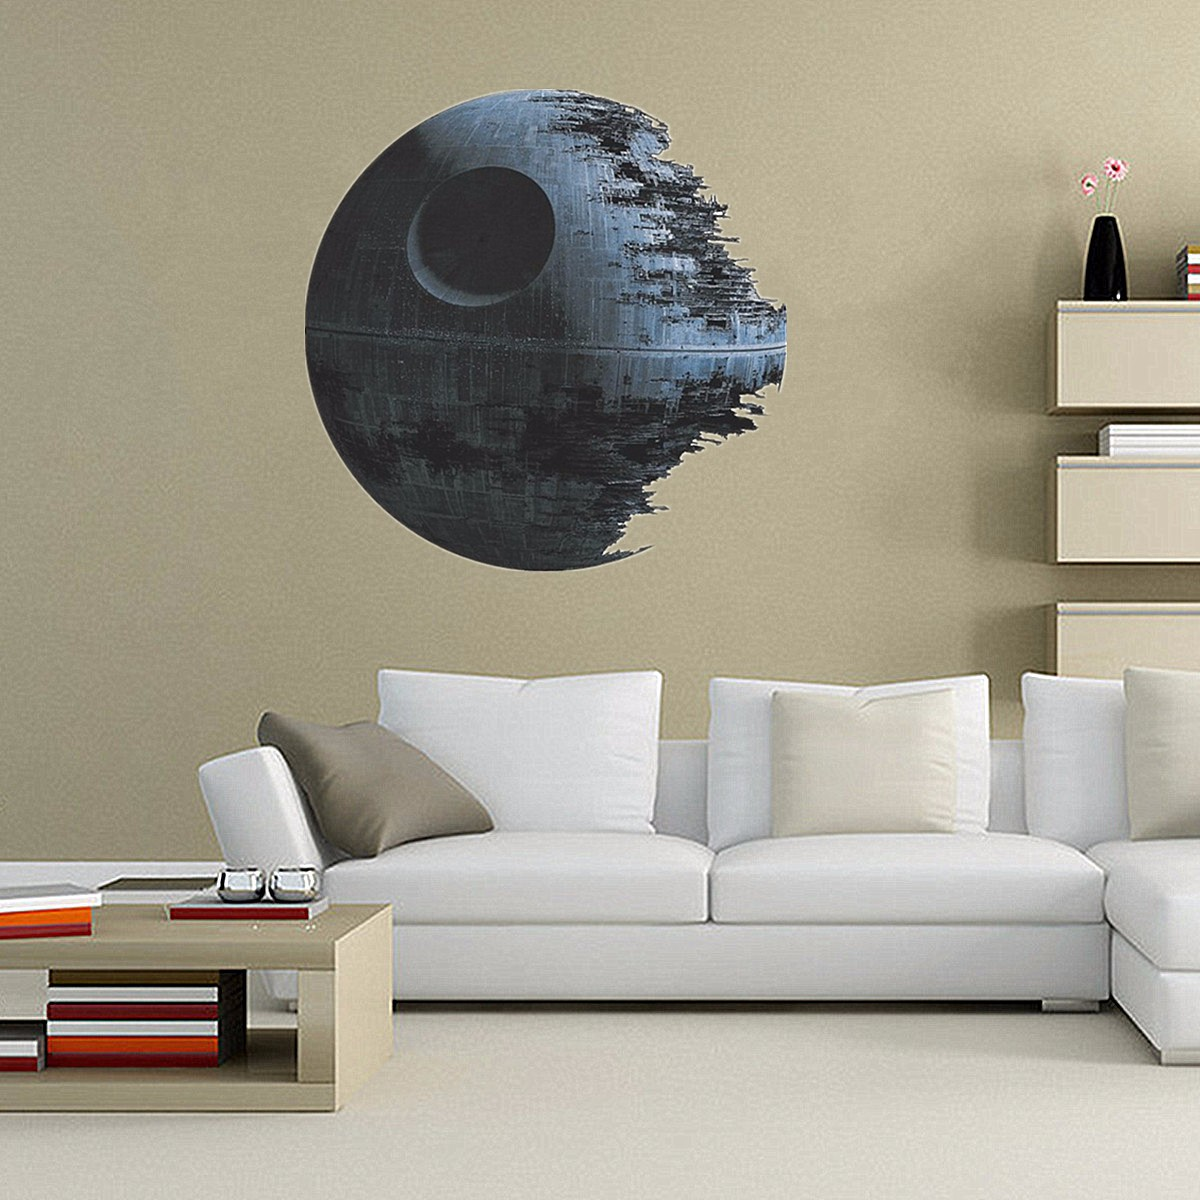 Deco Chambre Star Wars tempsa 45*45cm stickers muraux amovible death star wars